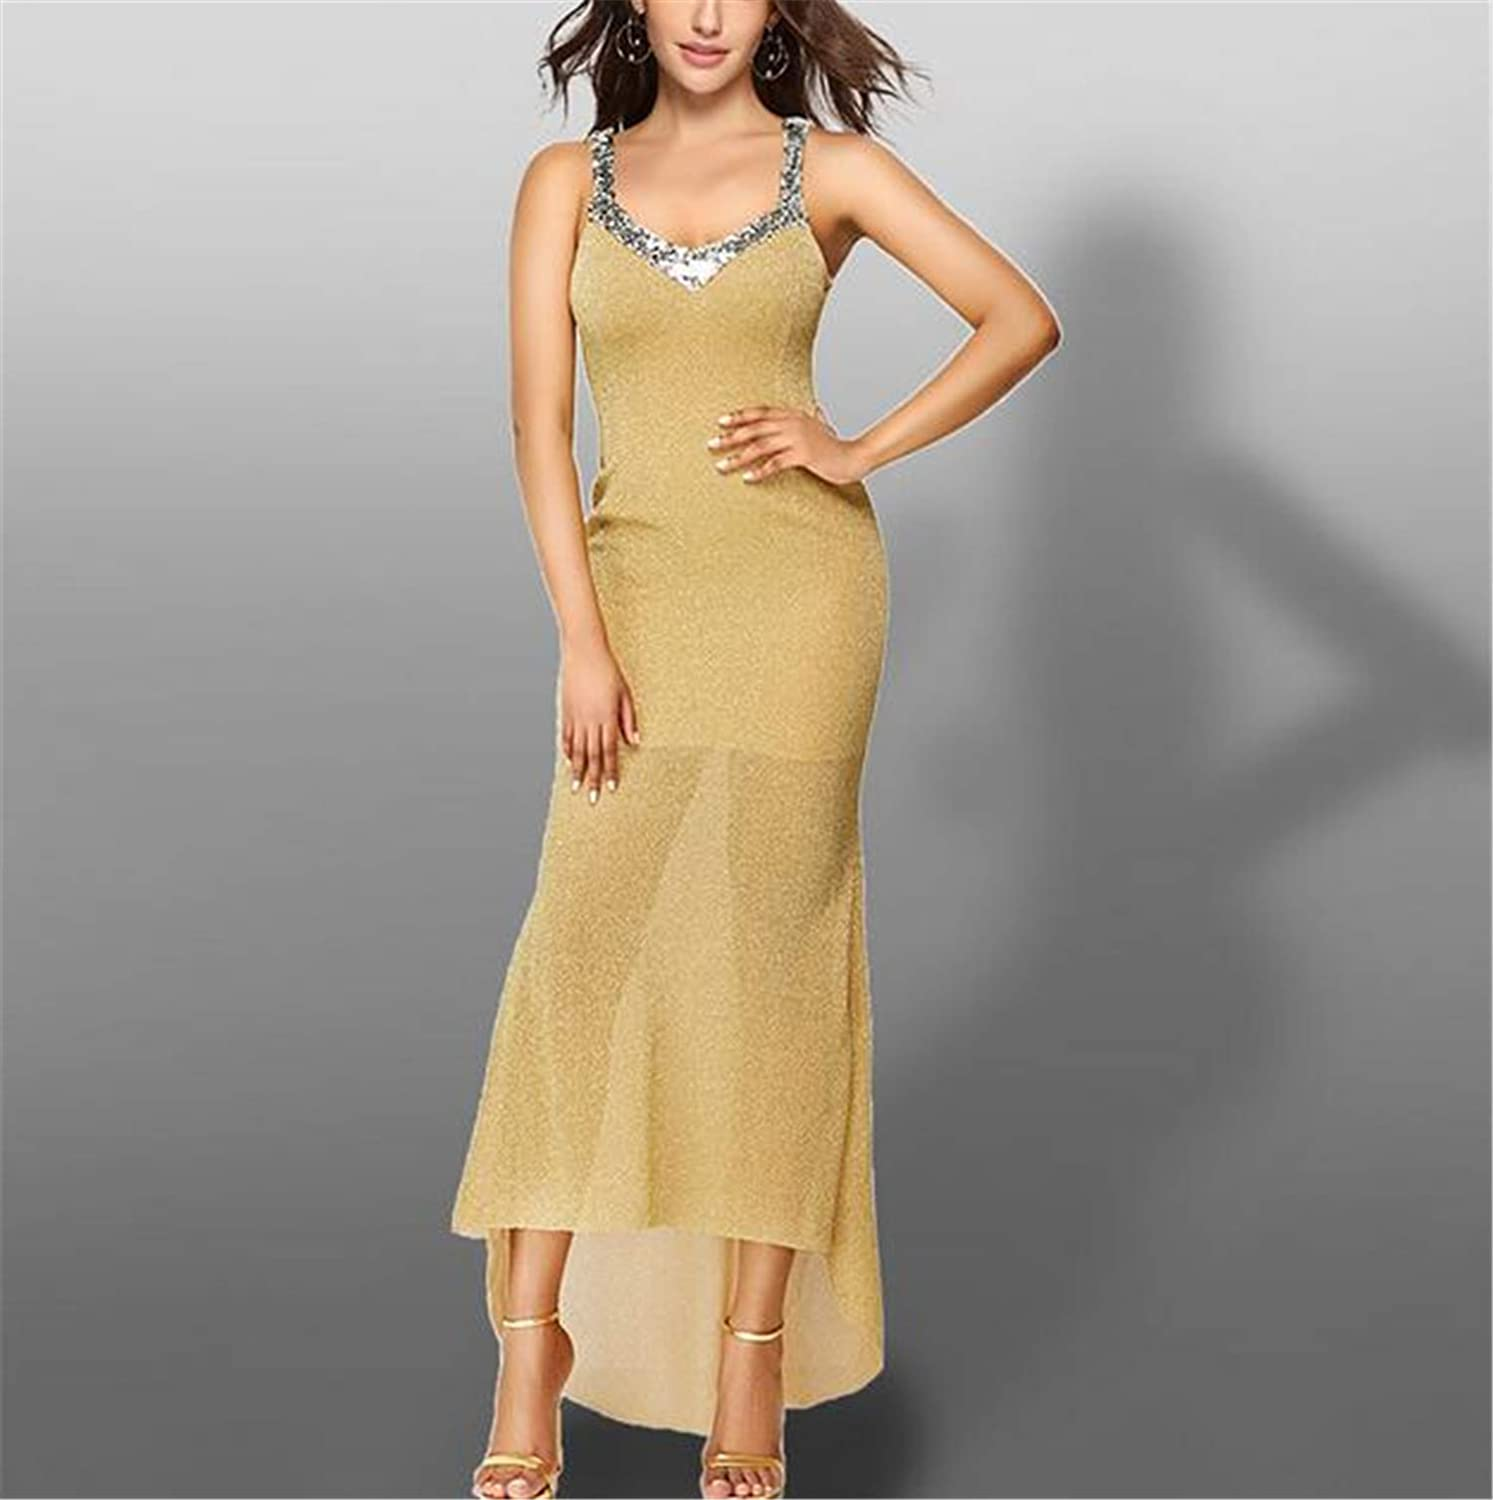 Evening Dress, Sexy Sling Sequin Long Section Open Back Round Neck Elegant Europe and America Bridesmaid Prom Party Cocktail Yellow Dress L